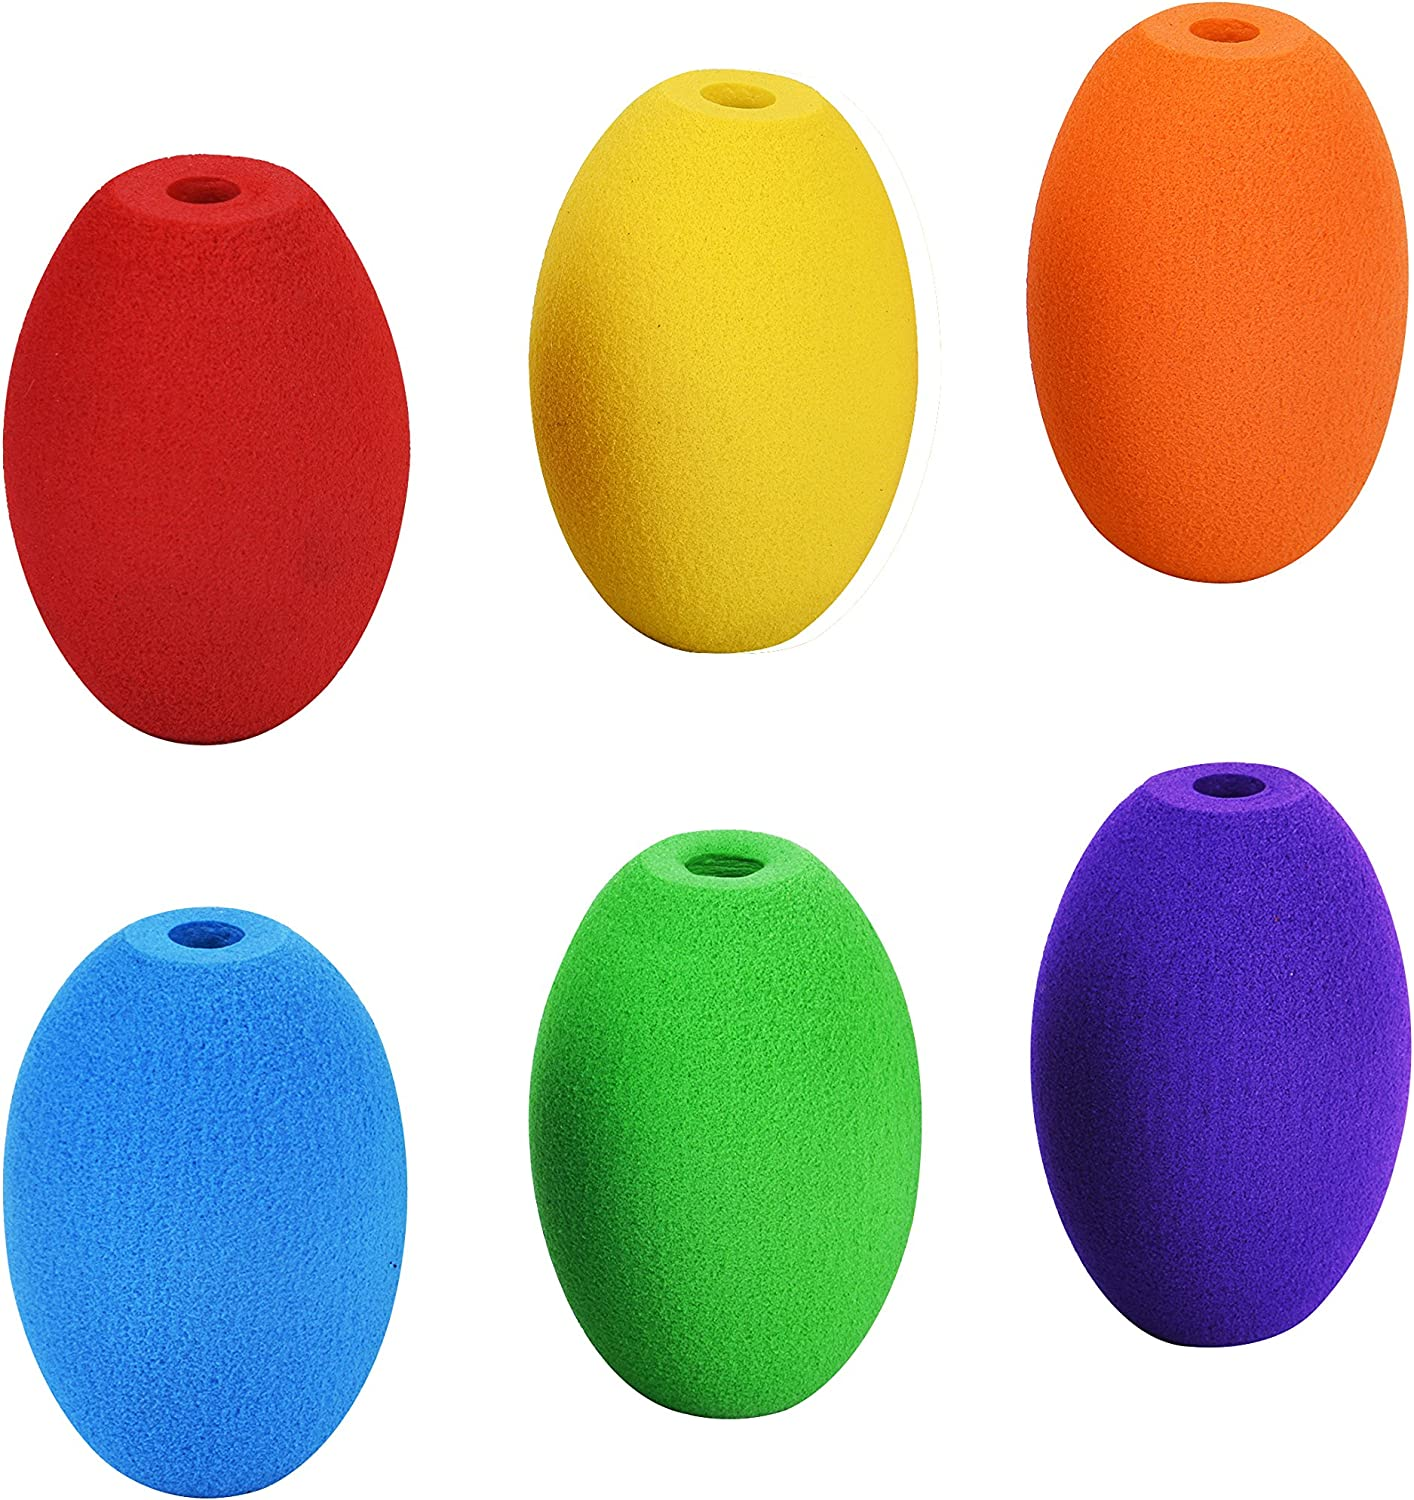 Special Supplies Egg Pencil Grips for Kids and Adults Colorful, Cushioned Holders for Handwriting, Drawing, Coloring - Ergonomic Right or Left-Handed Use - Reusable (6-Pack)